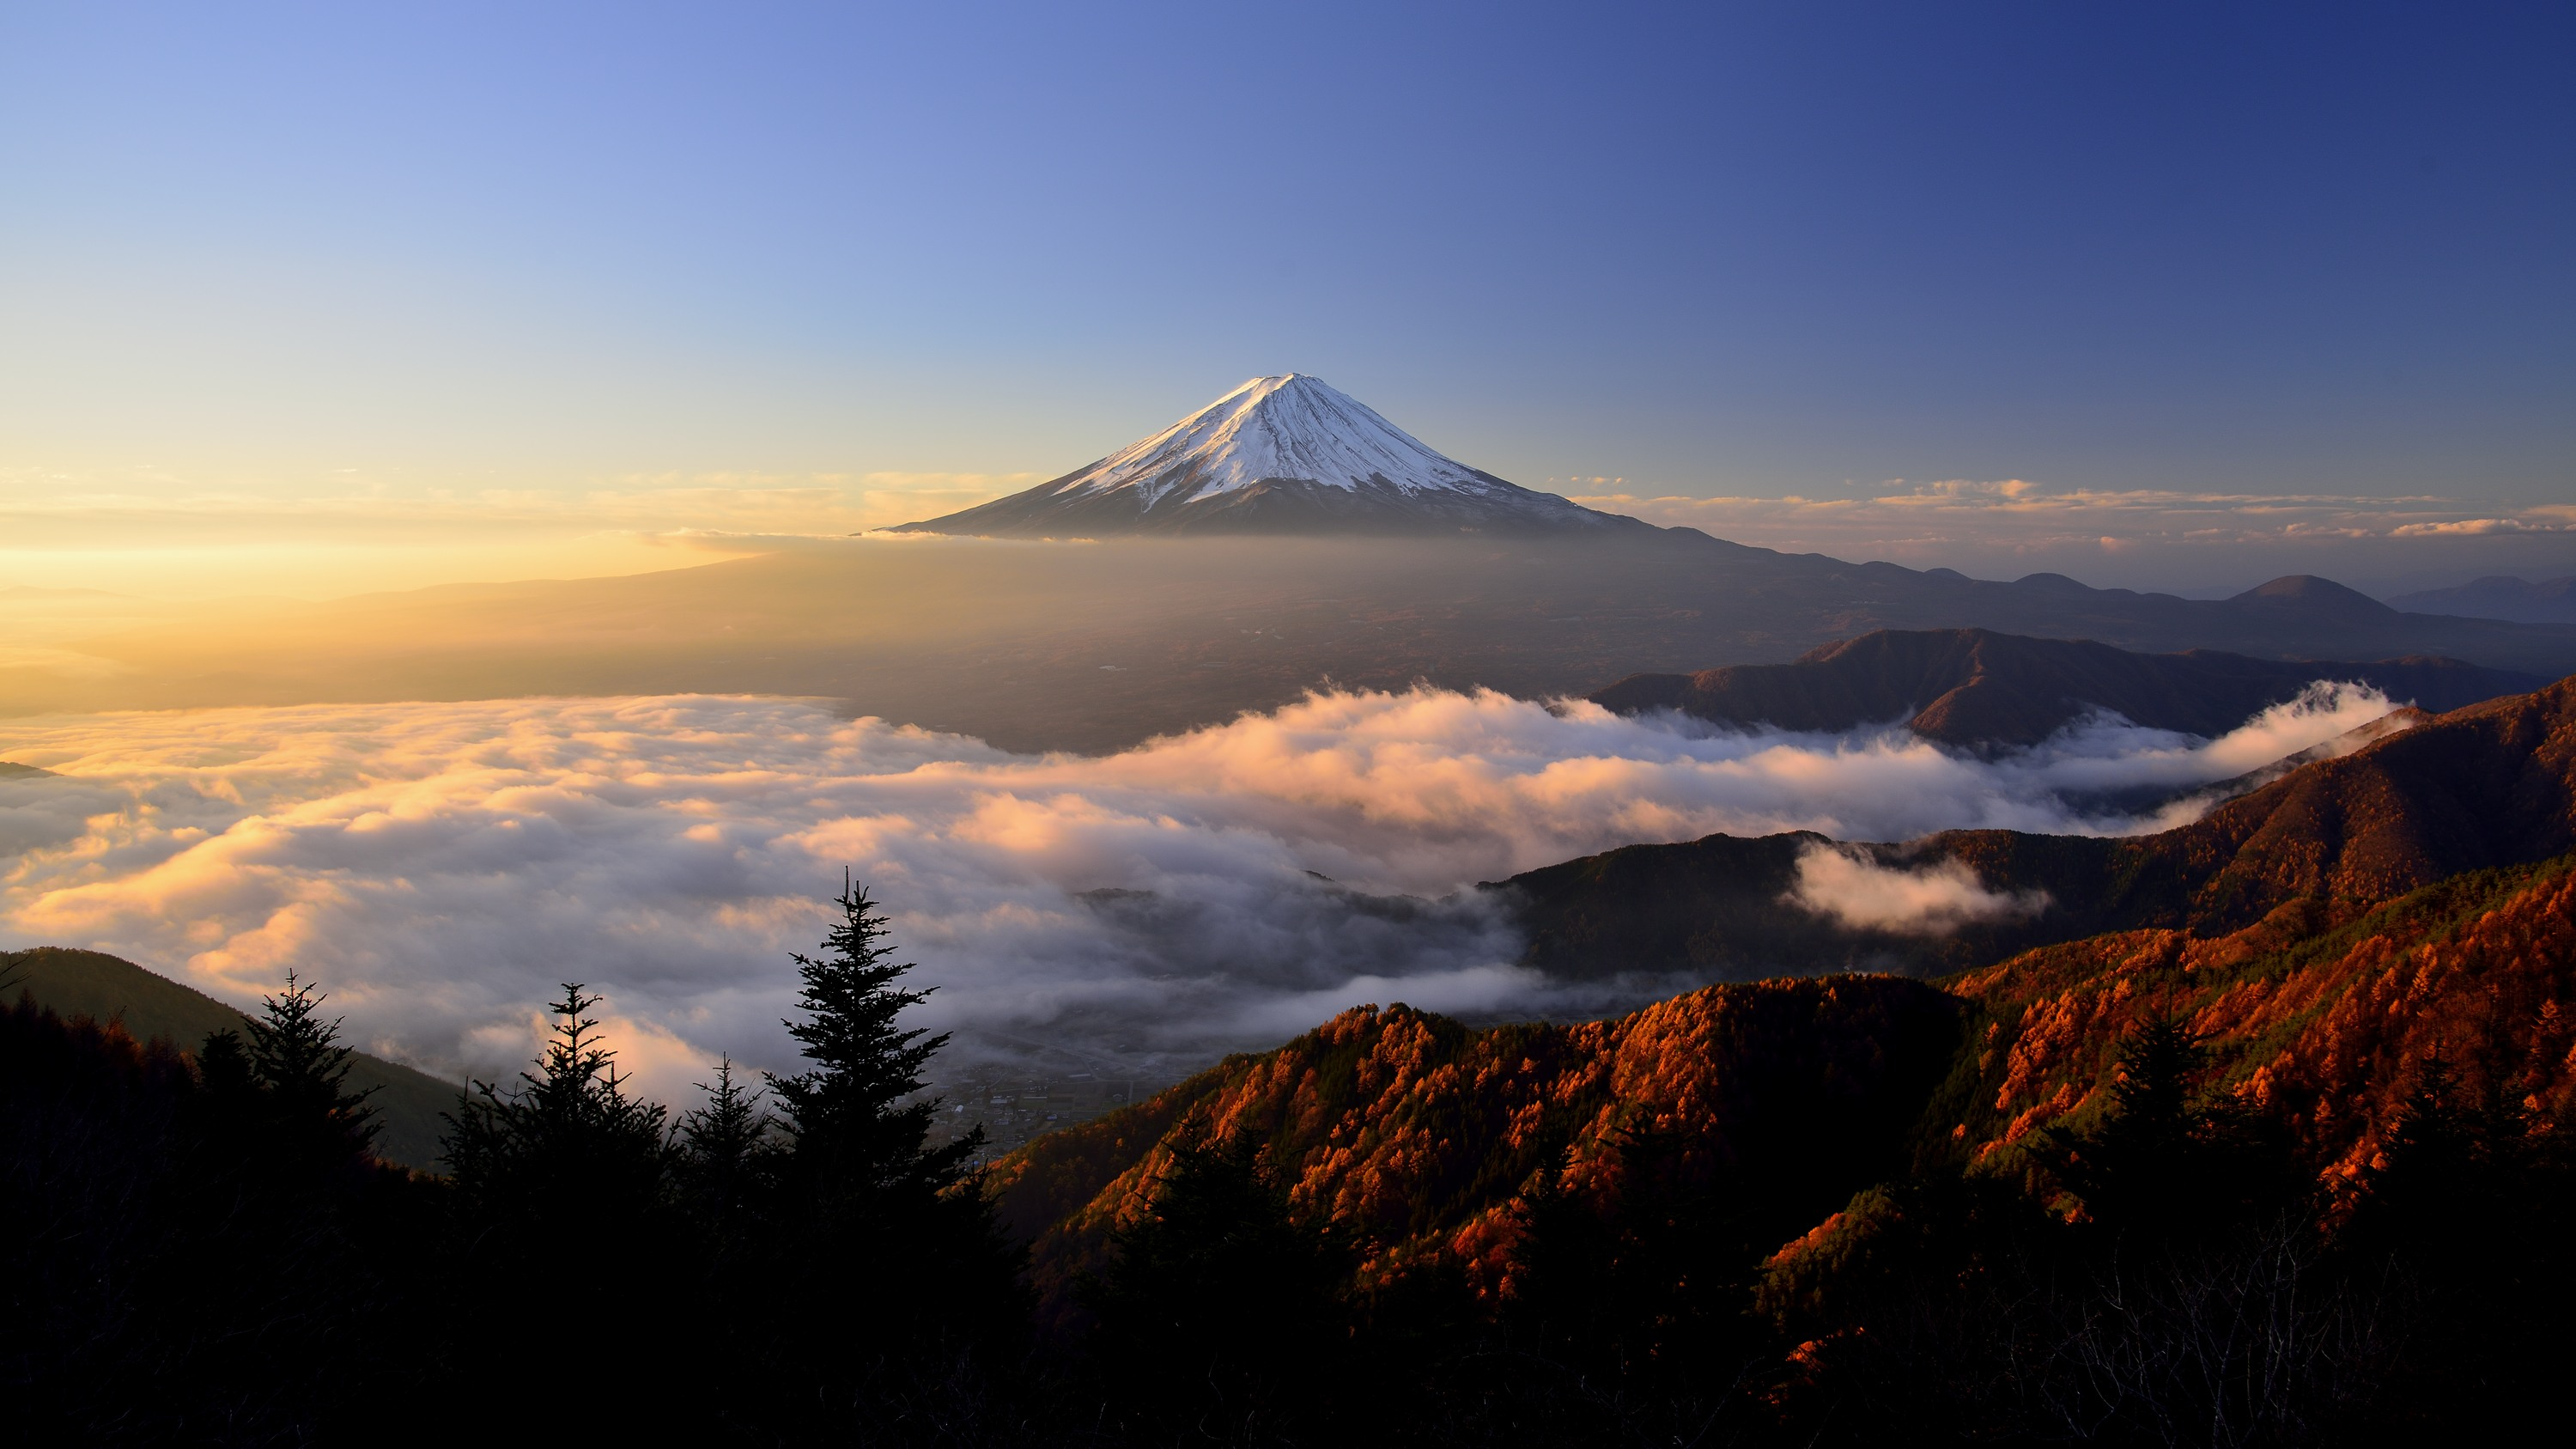 Pictures of mount fuji